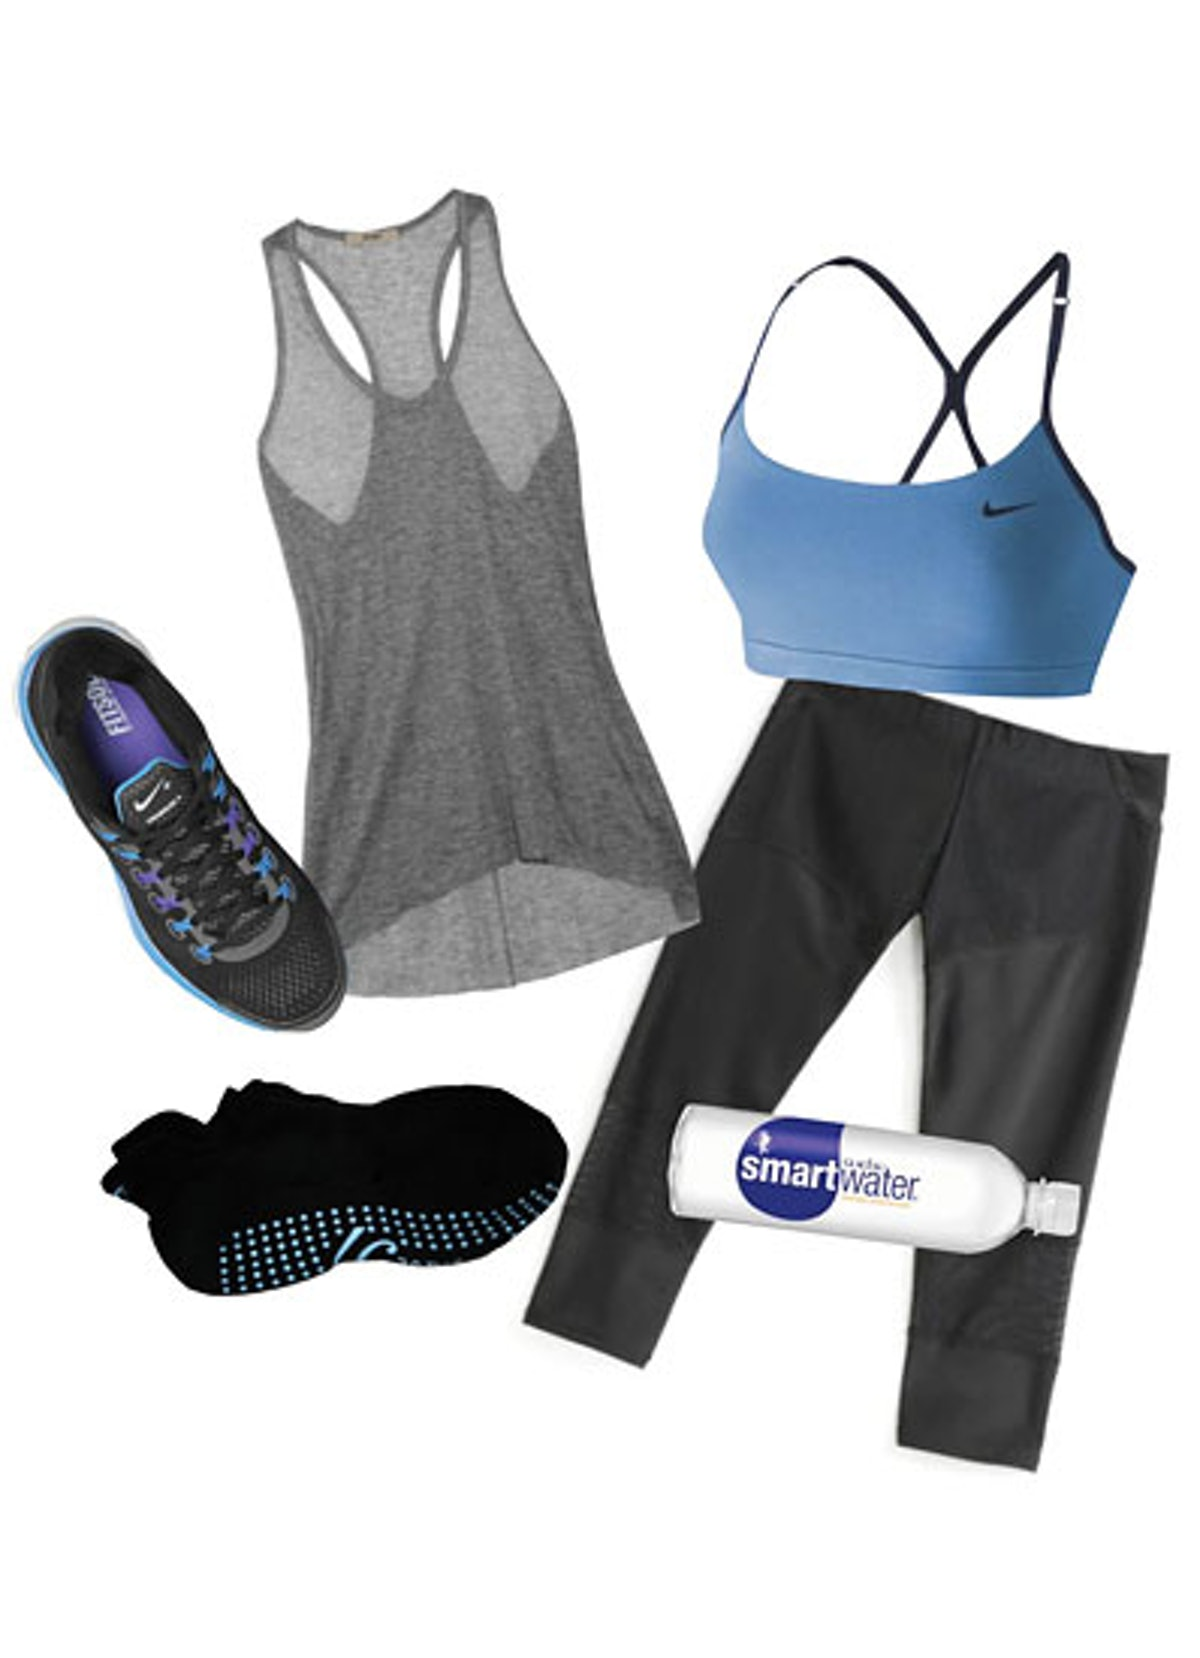 bess-workout-recommendations-01-v.jpg